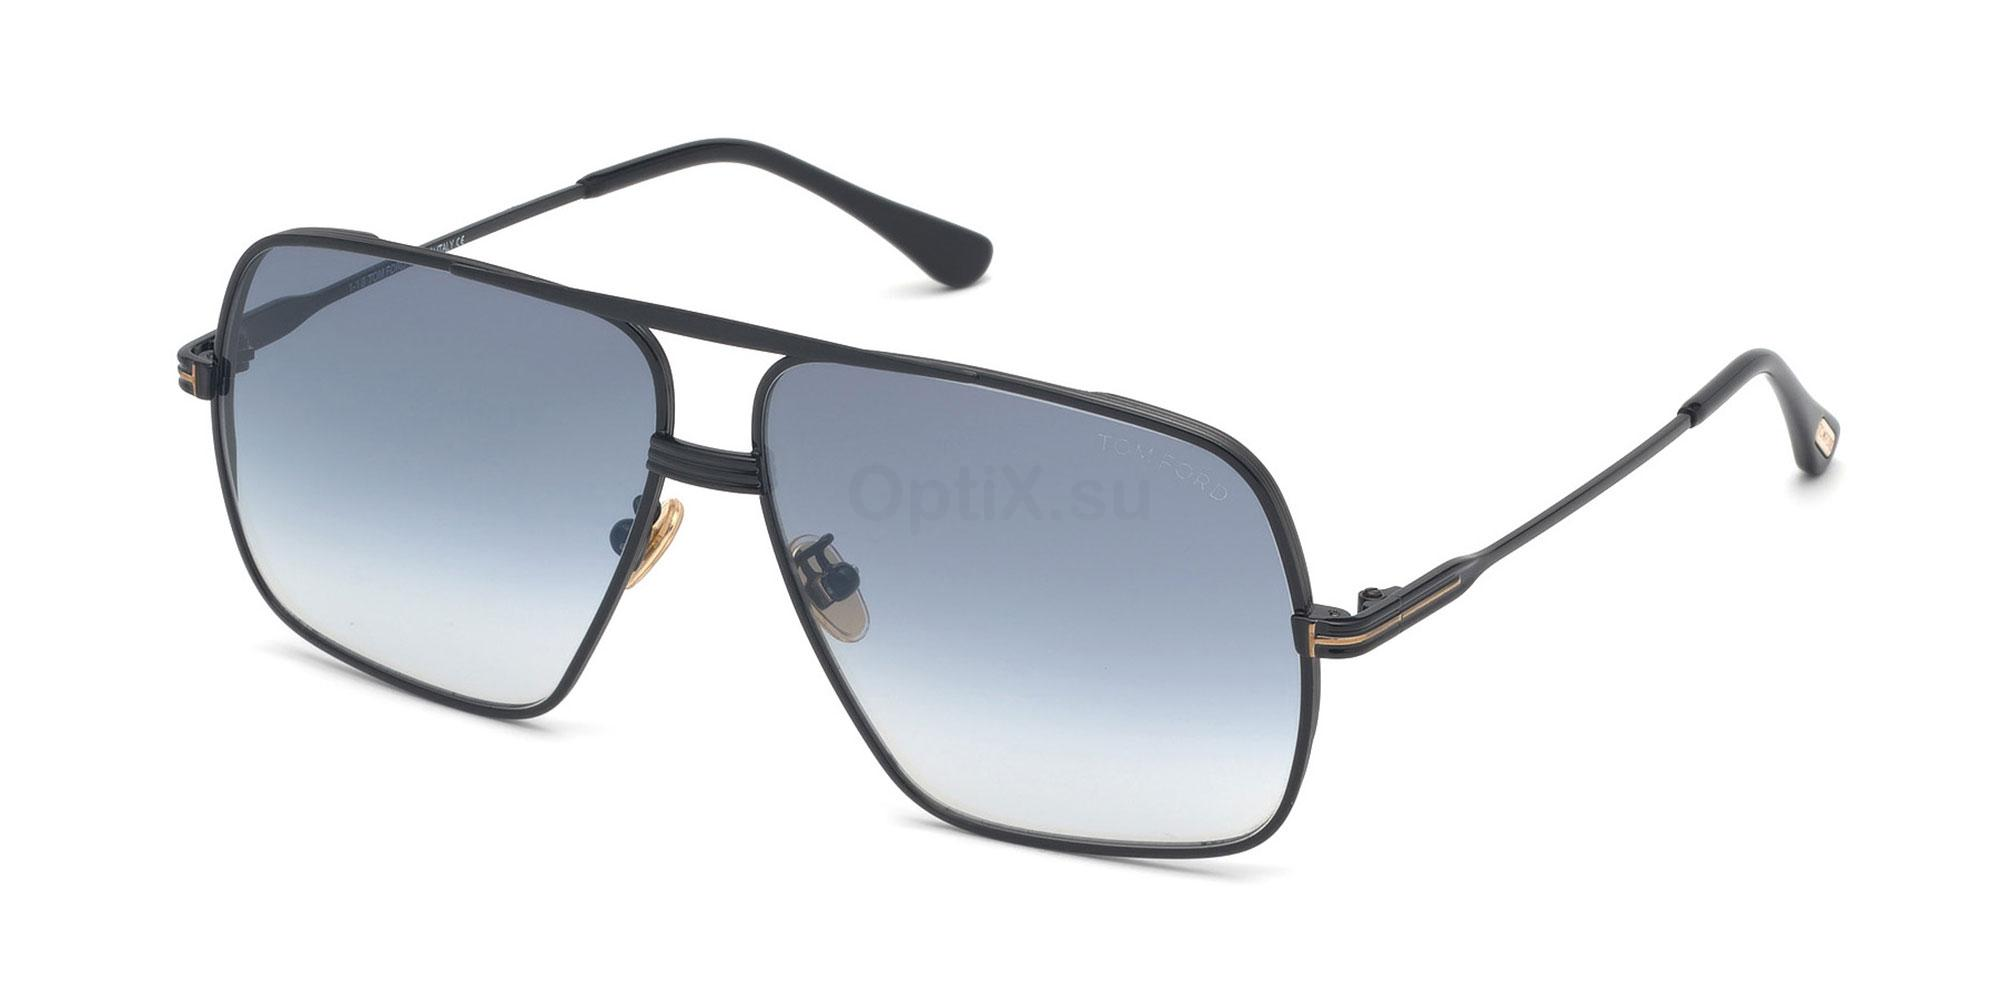 01W FT0735-H Sunglasses, Tom Ford